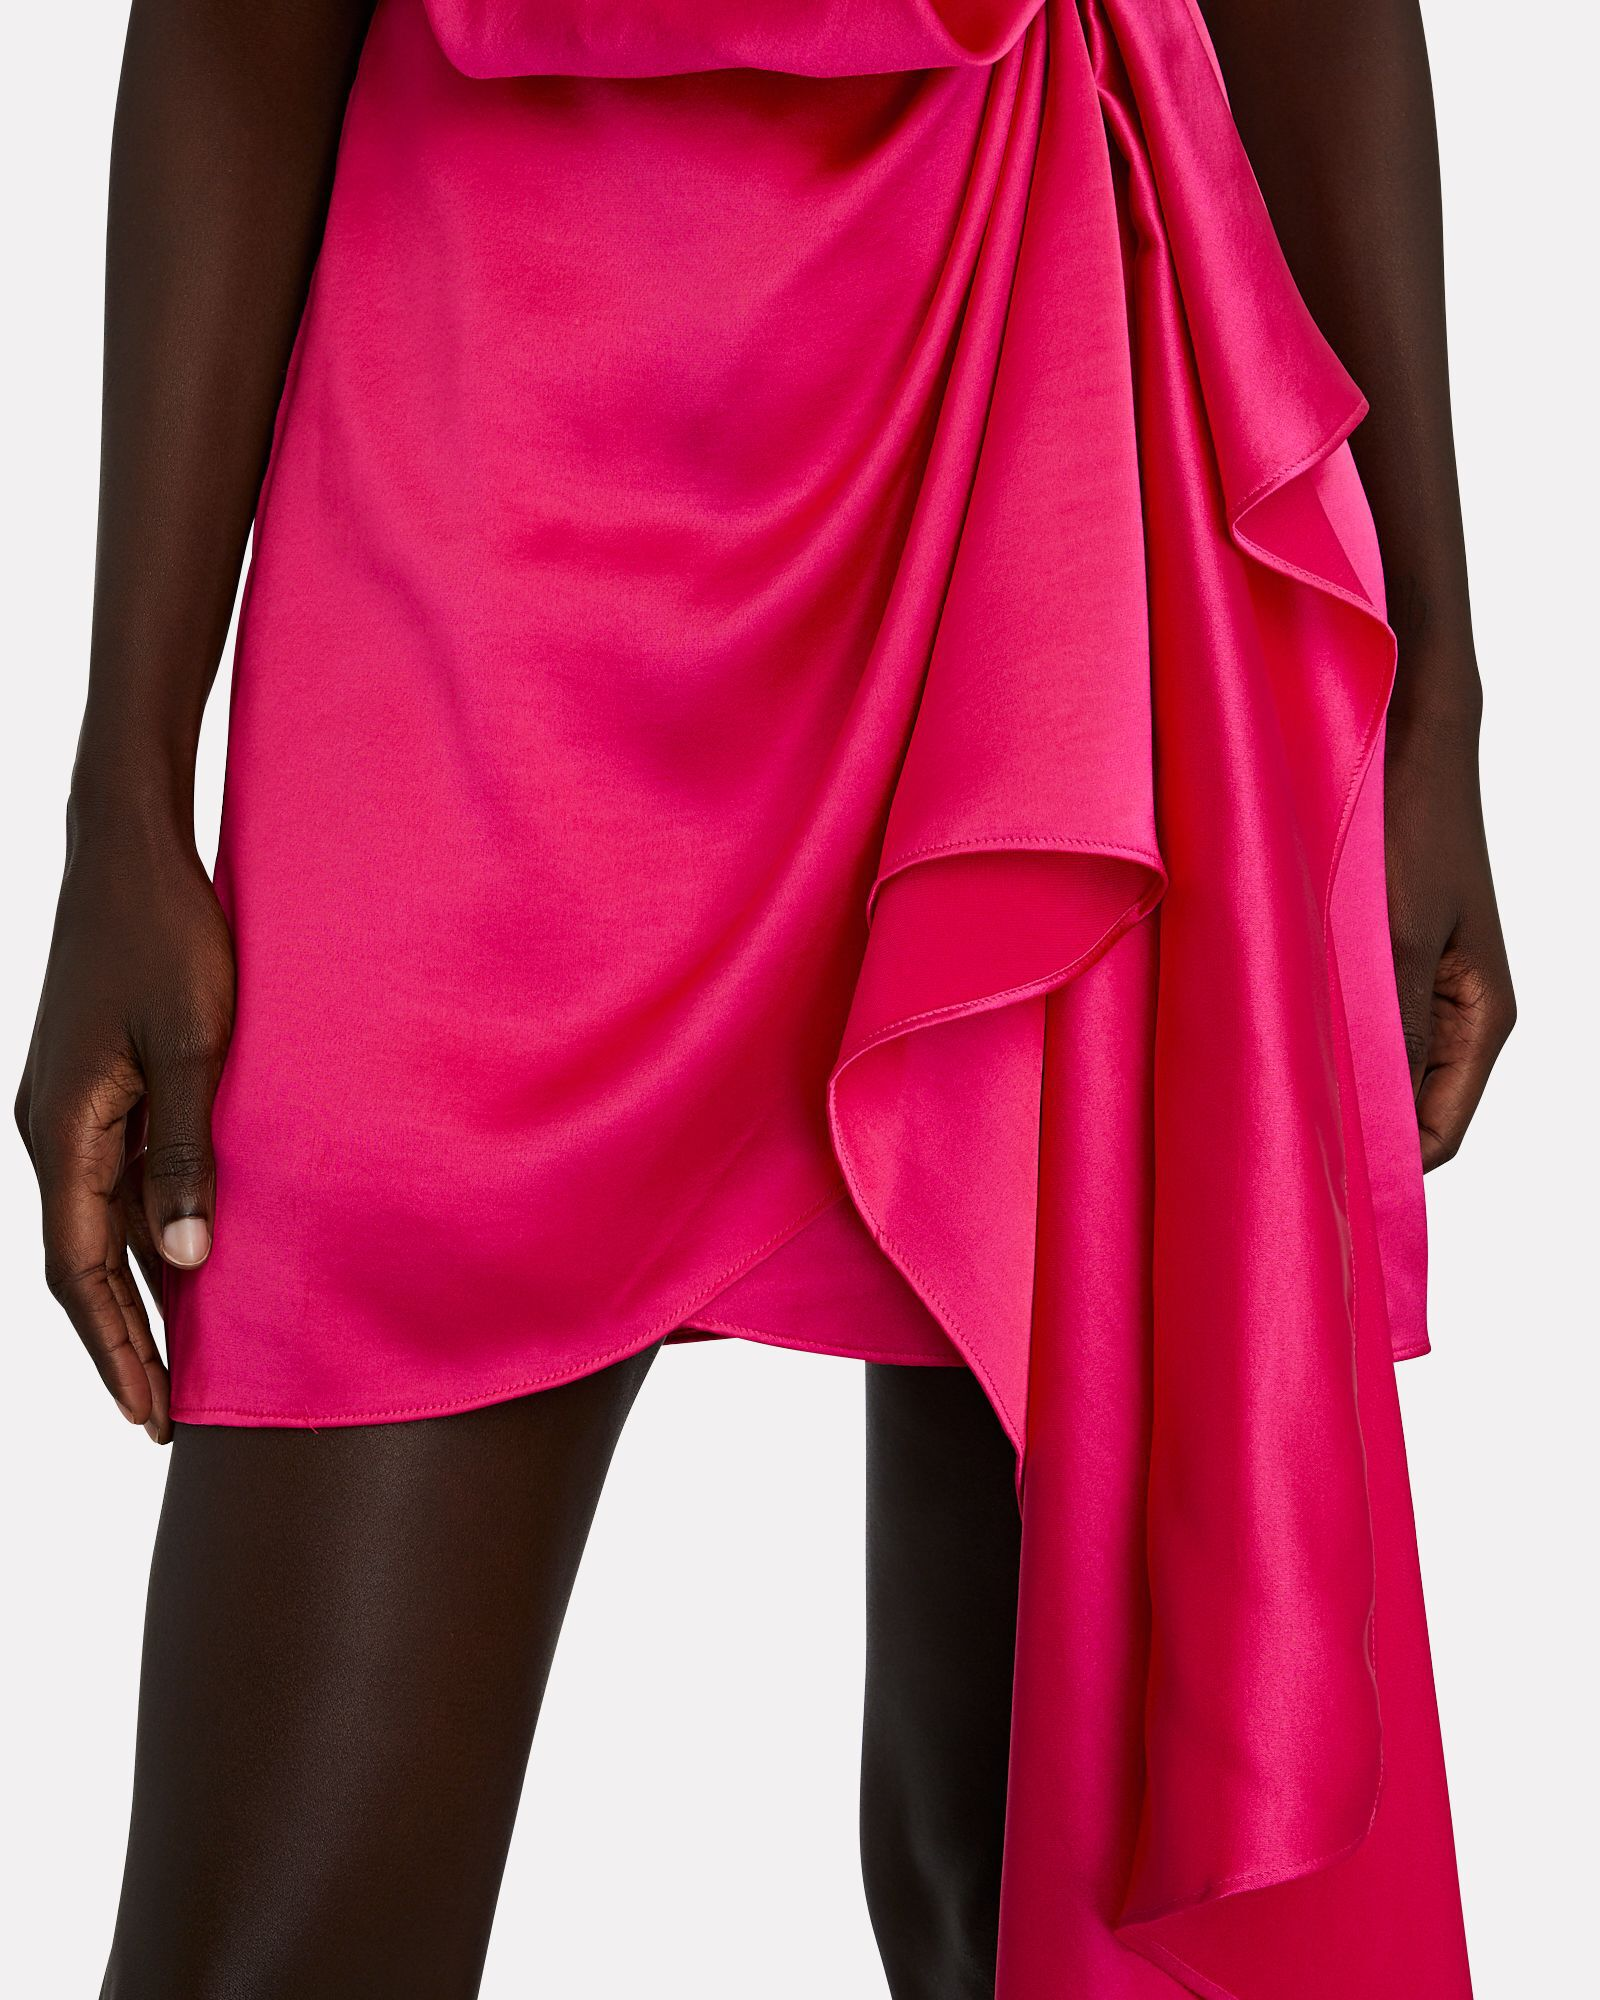 Lochner Satin Draped Mini Dress, PINK, hi-res